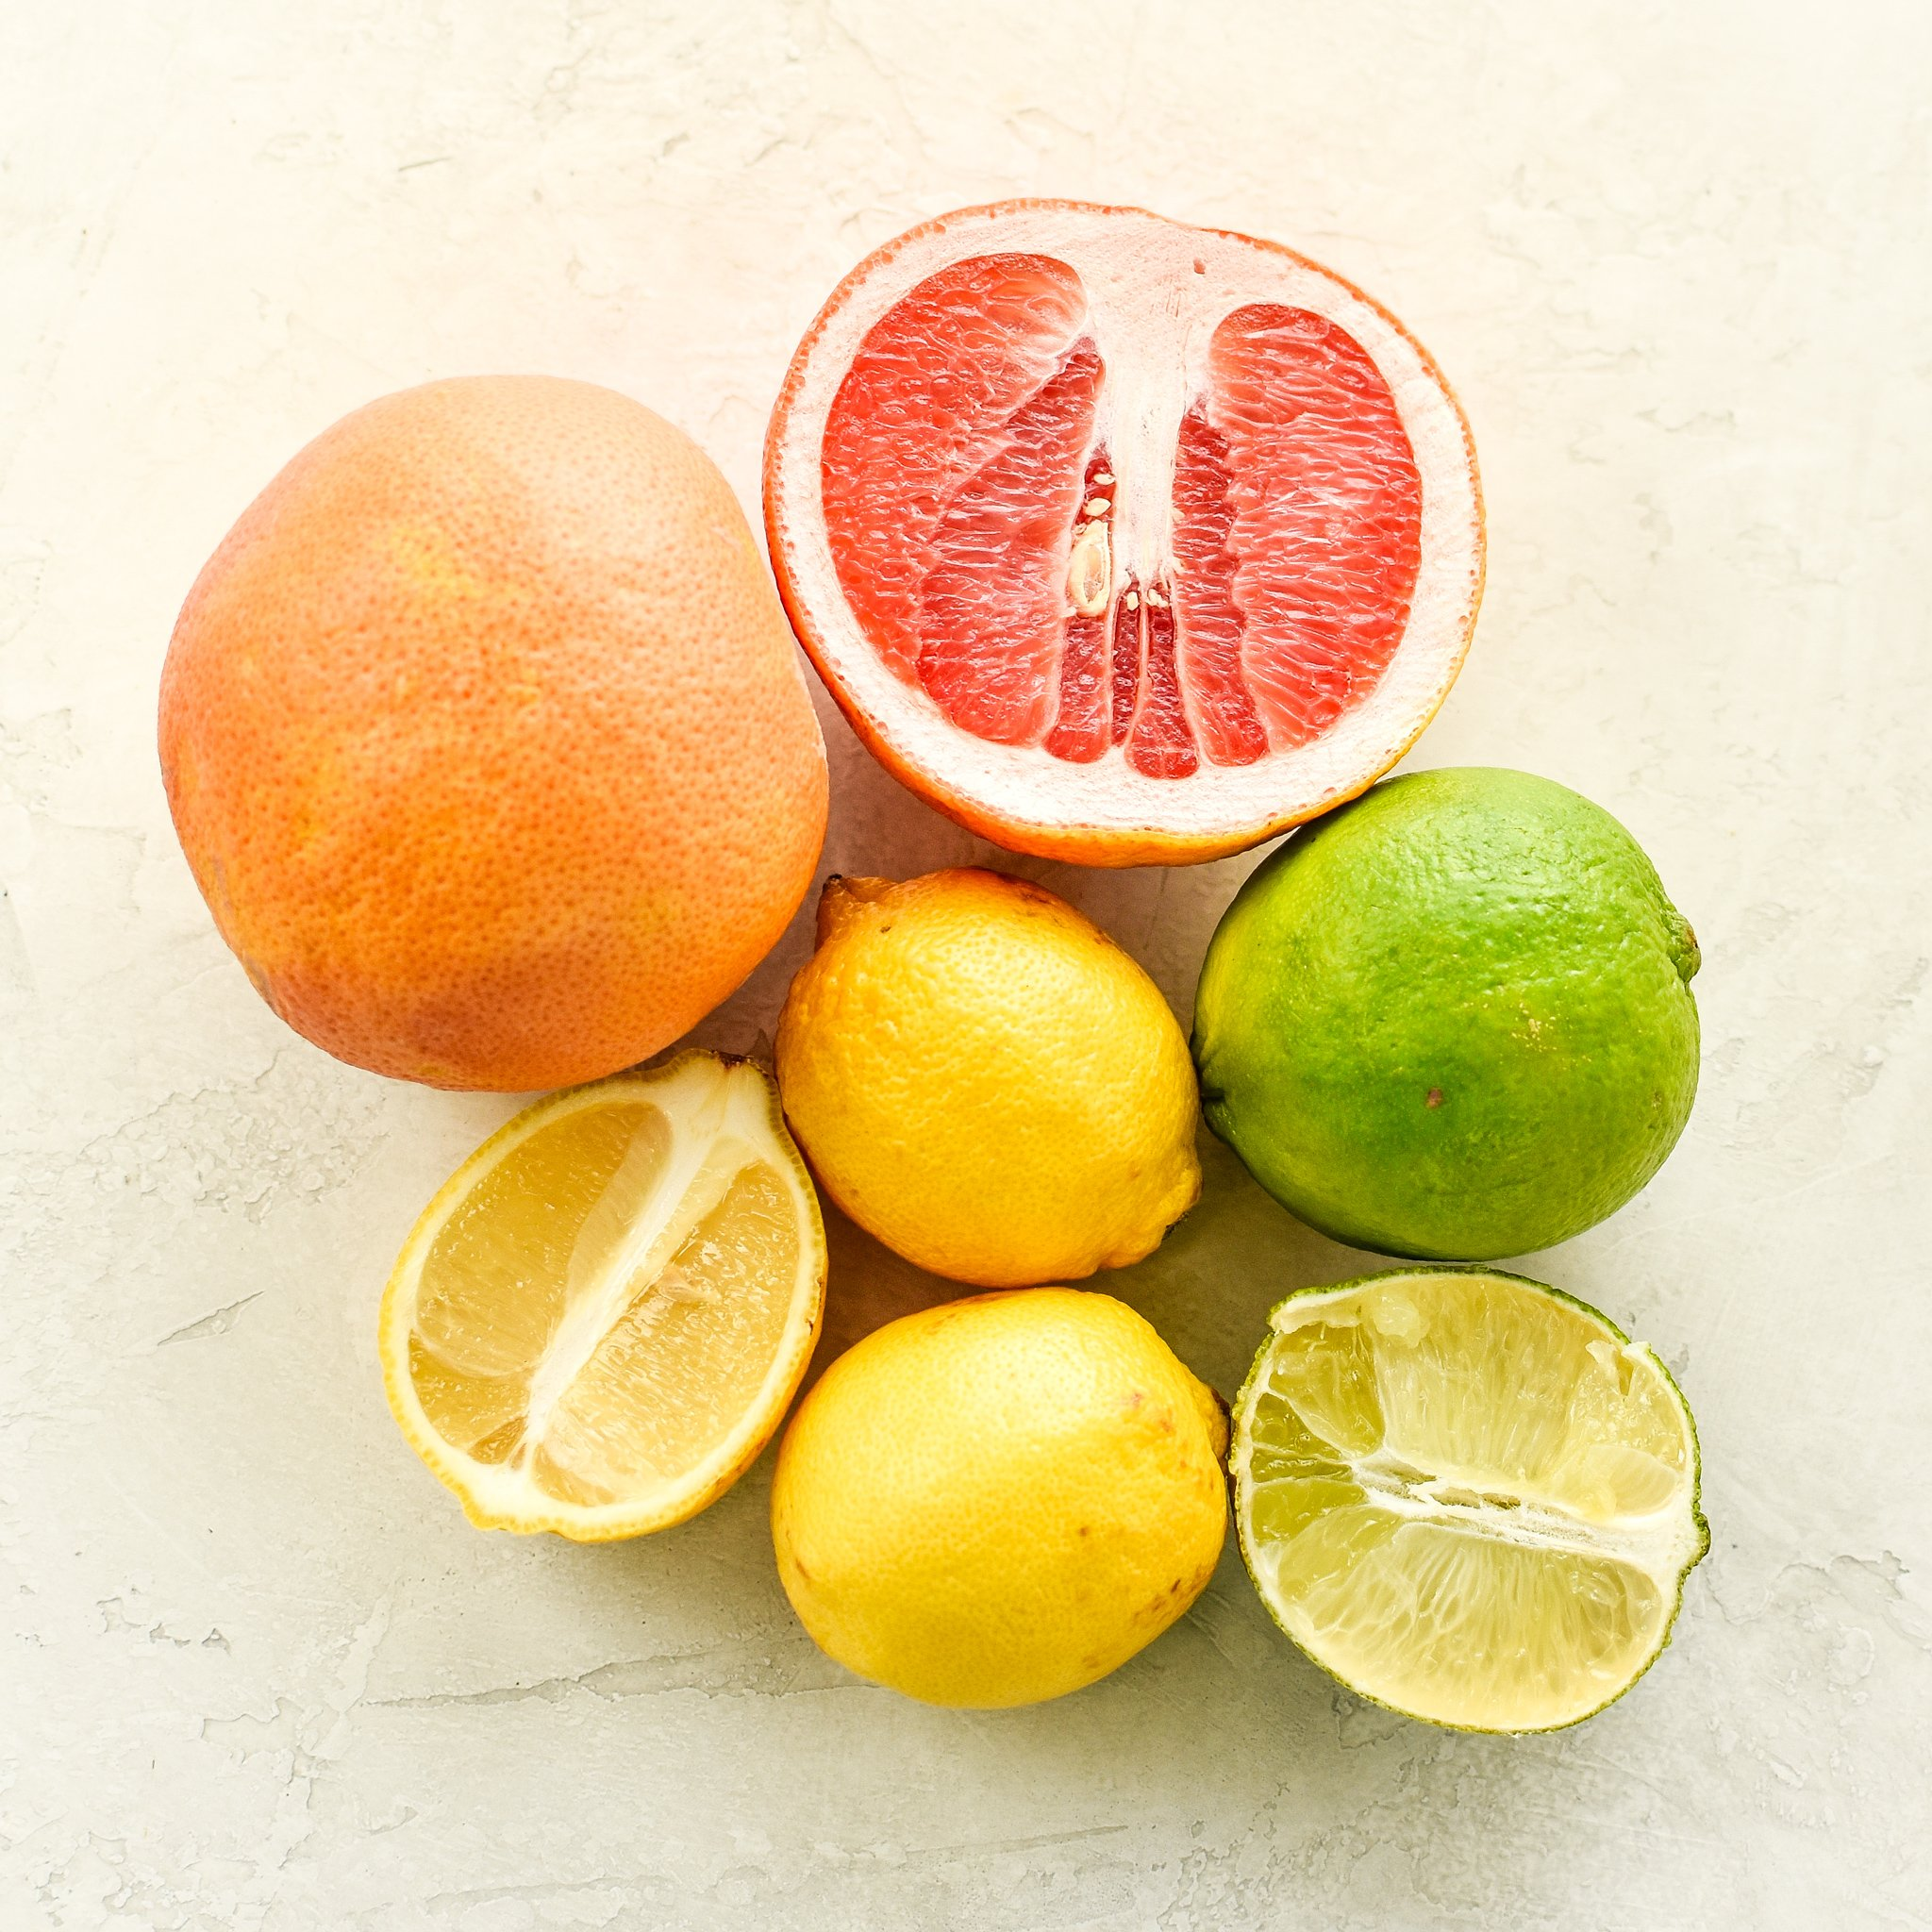 Citrus fruits laid out on a counter viewed from above - including grapefruit, lemons and limes. Some are cut in half.